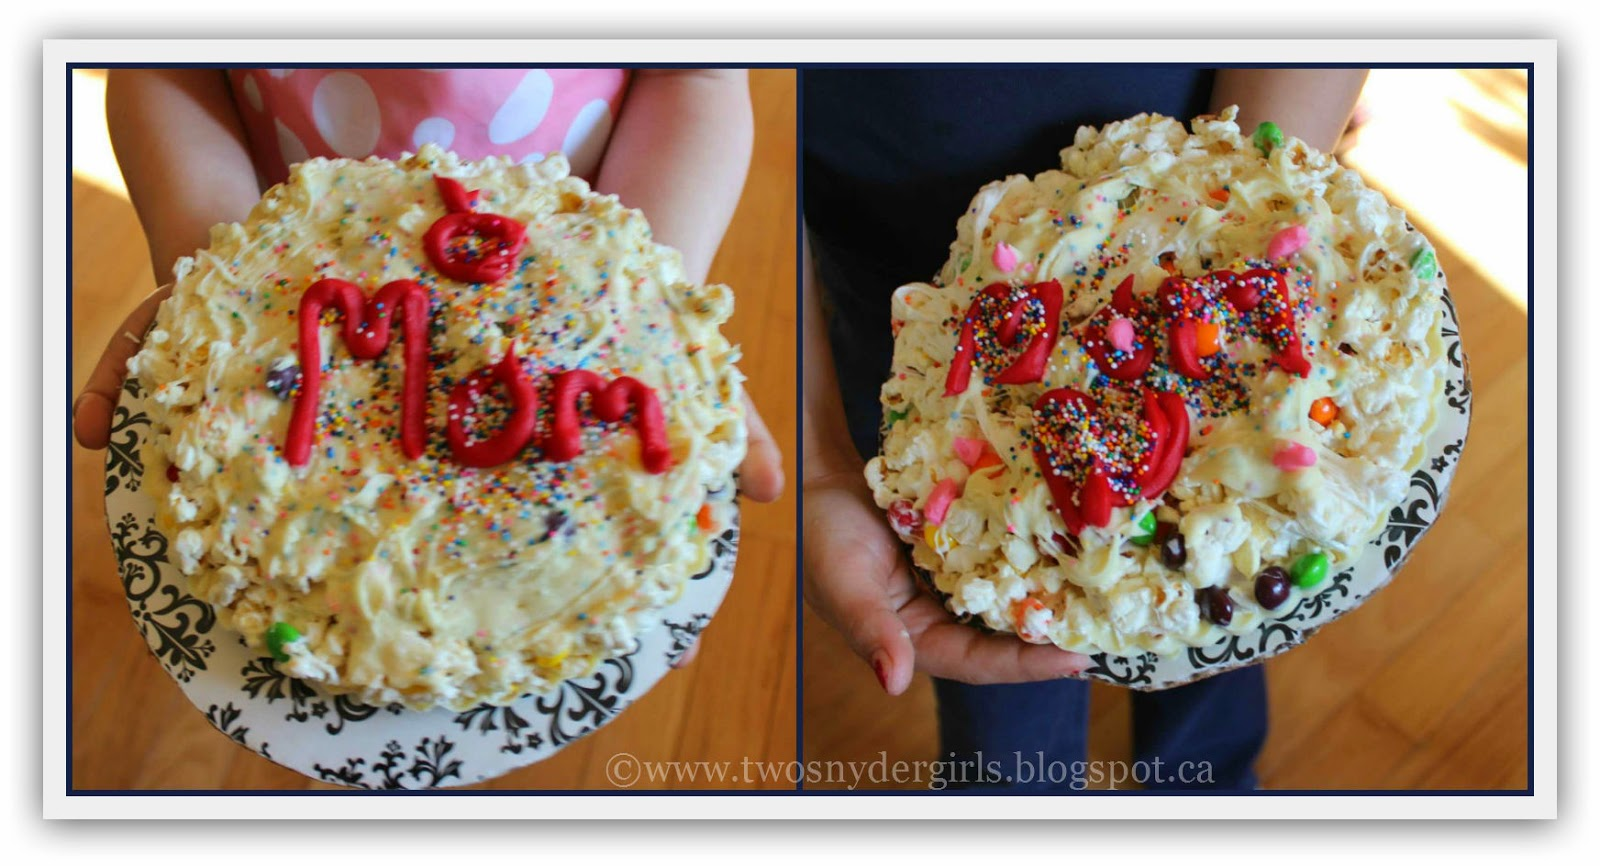 Two Popcorn Pizza with Mom written on them